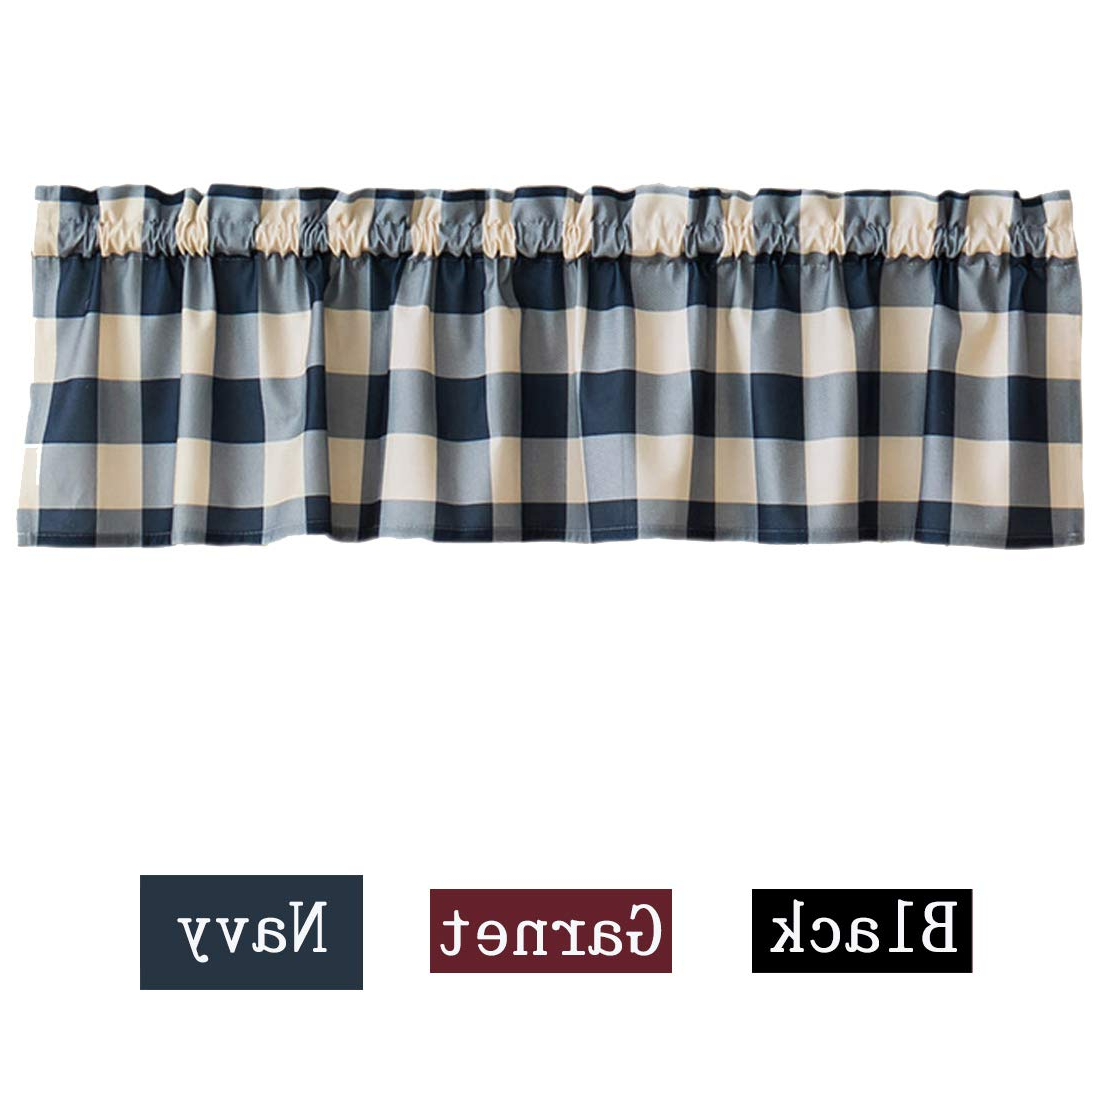 Jahome Buffalo Check Plaid Window Curtain Valances Thick Plushed Window Treatments For Kitchen Bath Laundry Bedroom Living Room (navy) With Latest Grandin Curtain Valances In Black (View 19 of 20)